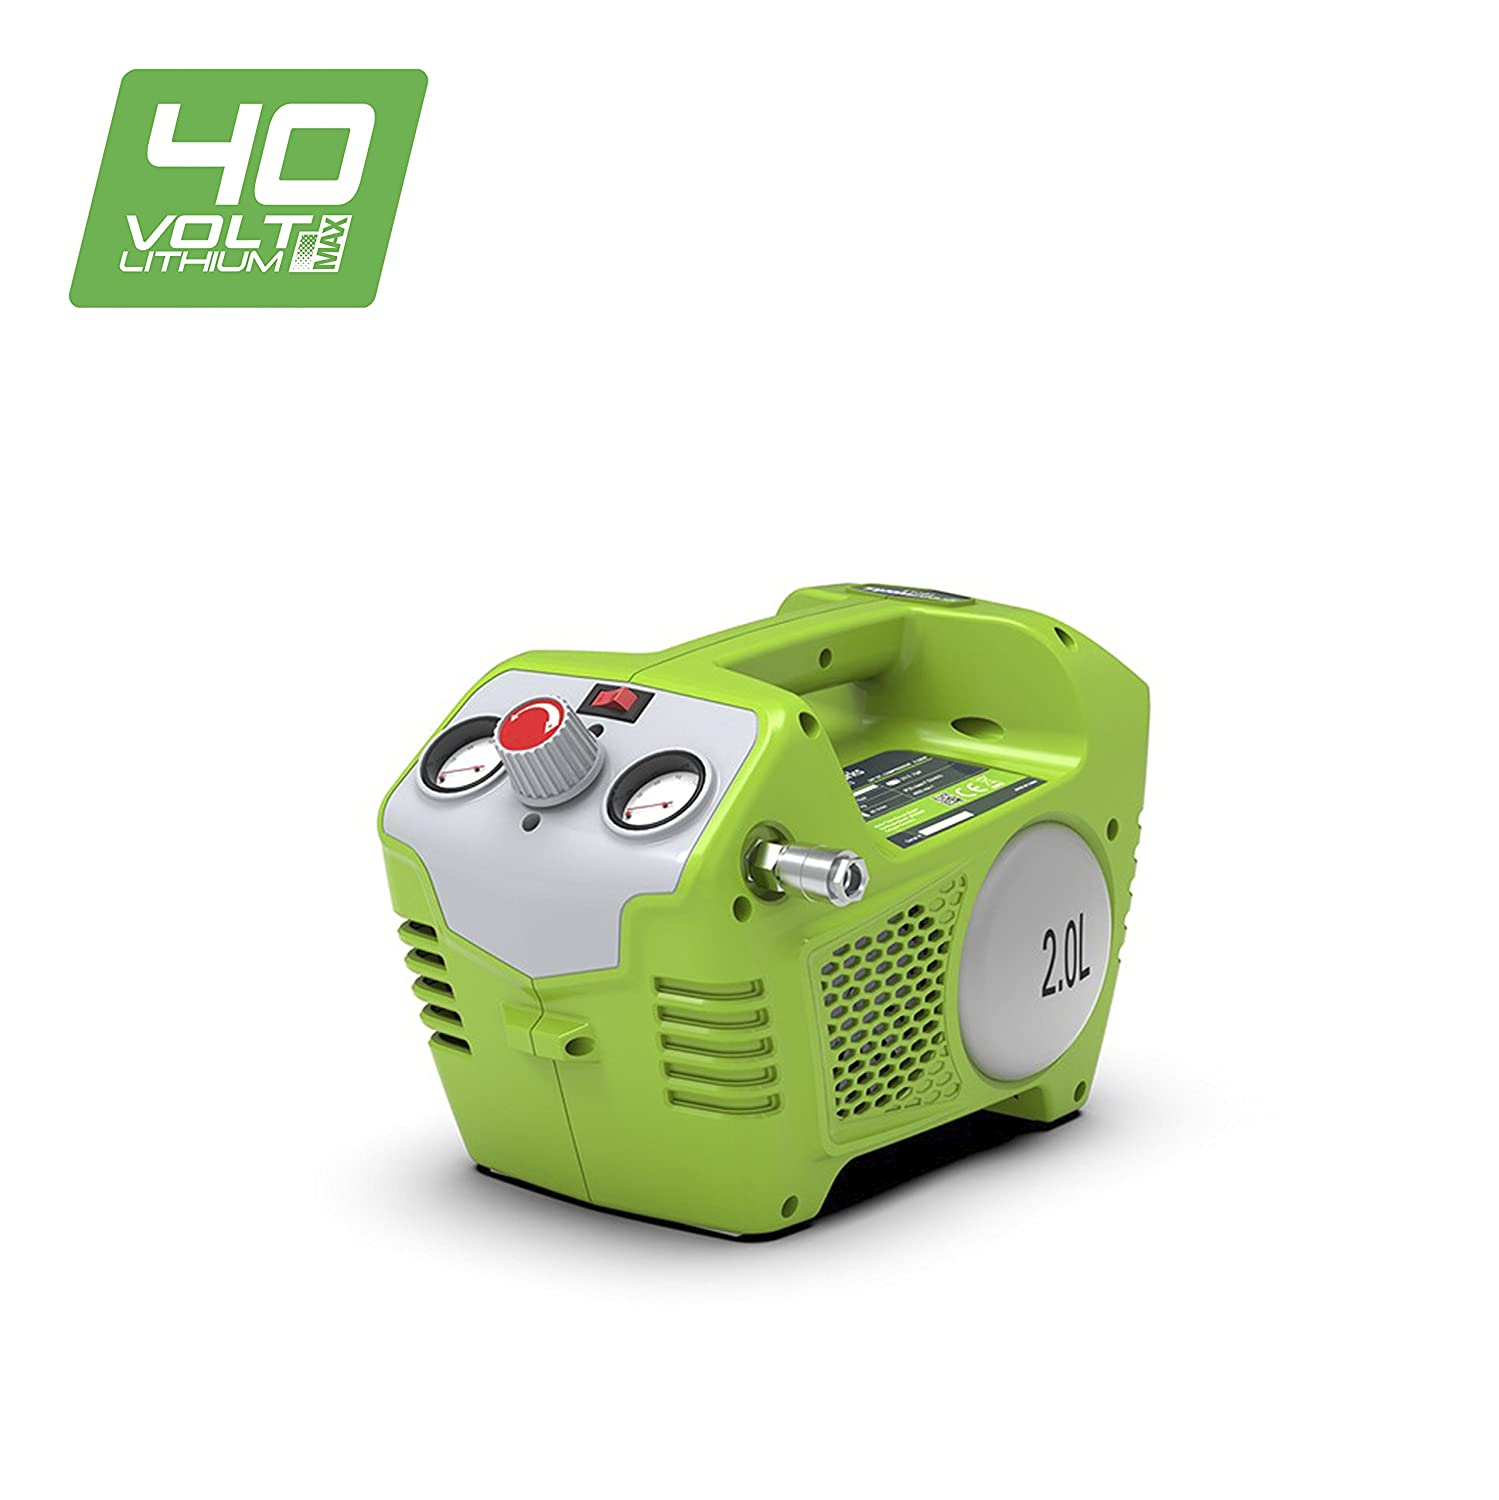 Greenworks Compresseur d'air de 2L sans fil sur batterie 40V Lithium-ion (sans batterie ni chargeur) - 4100802 Greenworks Tools G40AC (Art/No: 4100802)